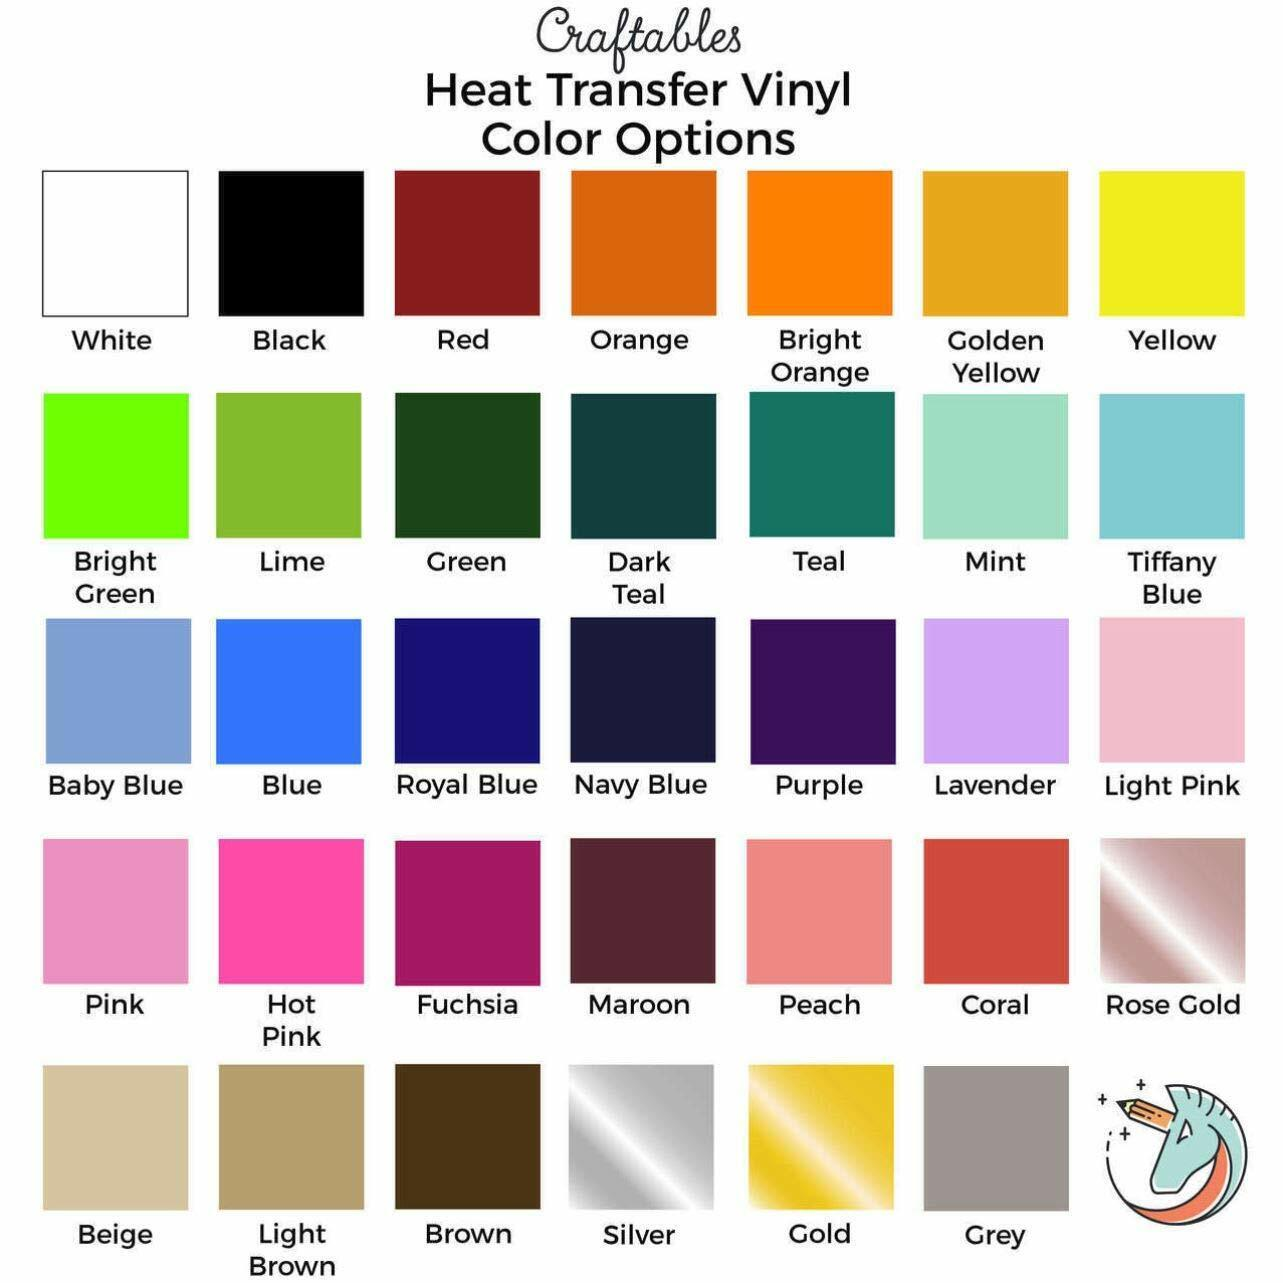 Craftables Heat Transfer Vinyl Roll Iron on HTV 11 ft for Cricut, Silhouette